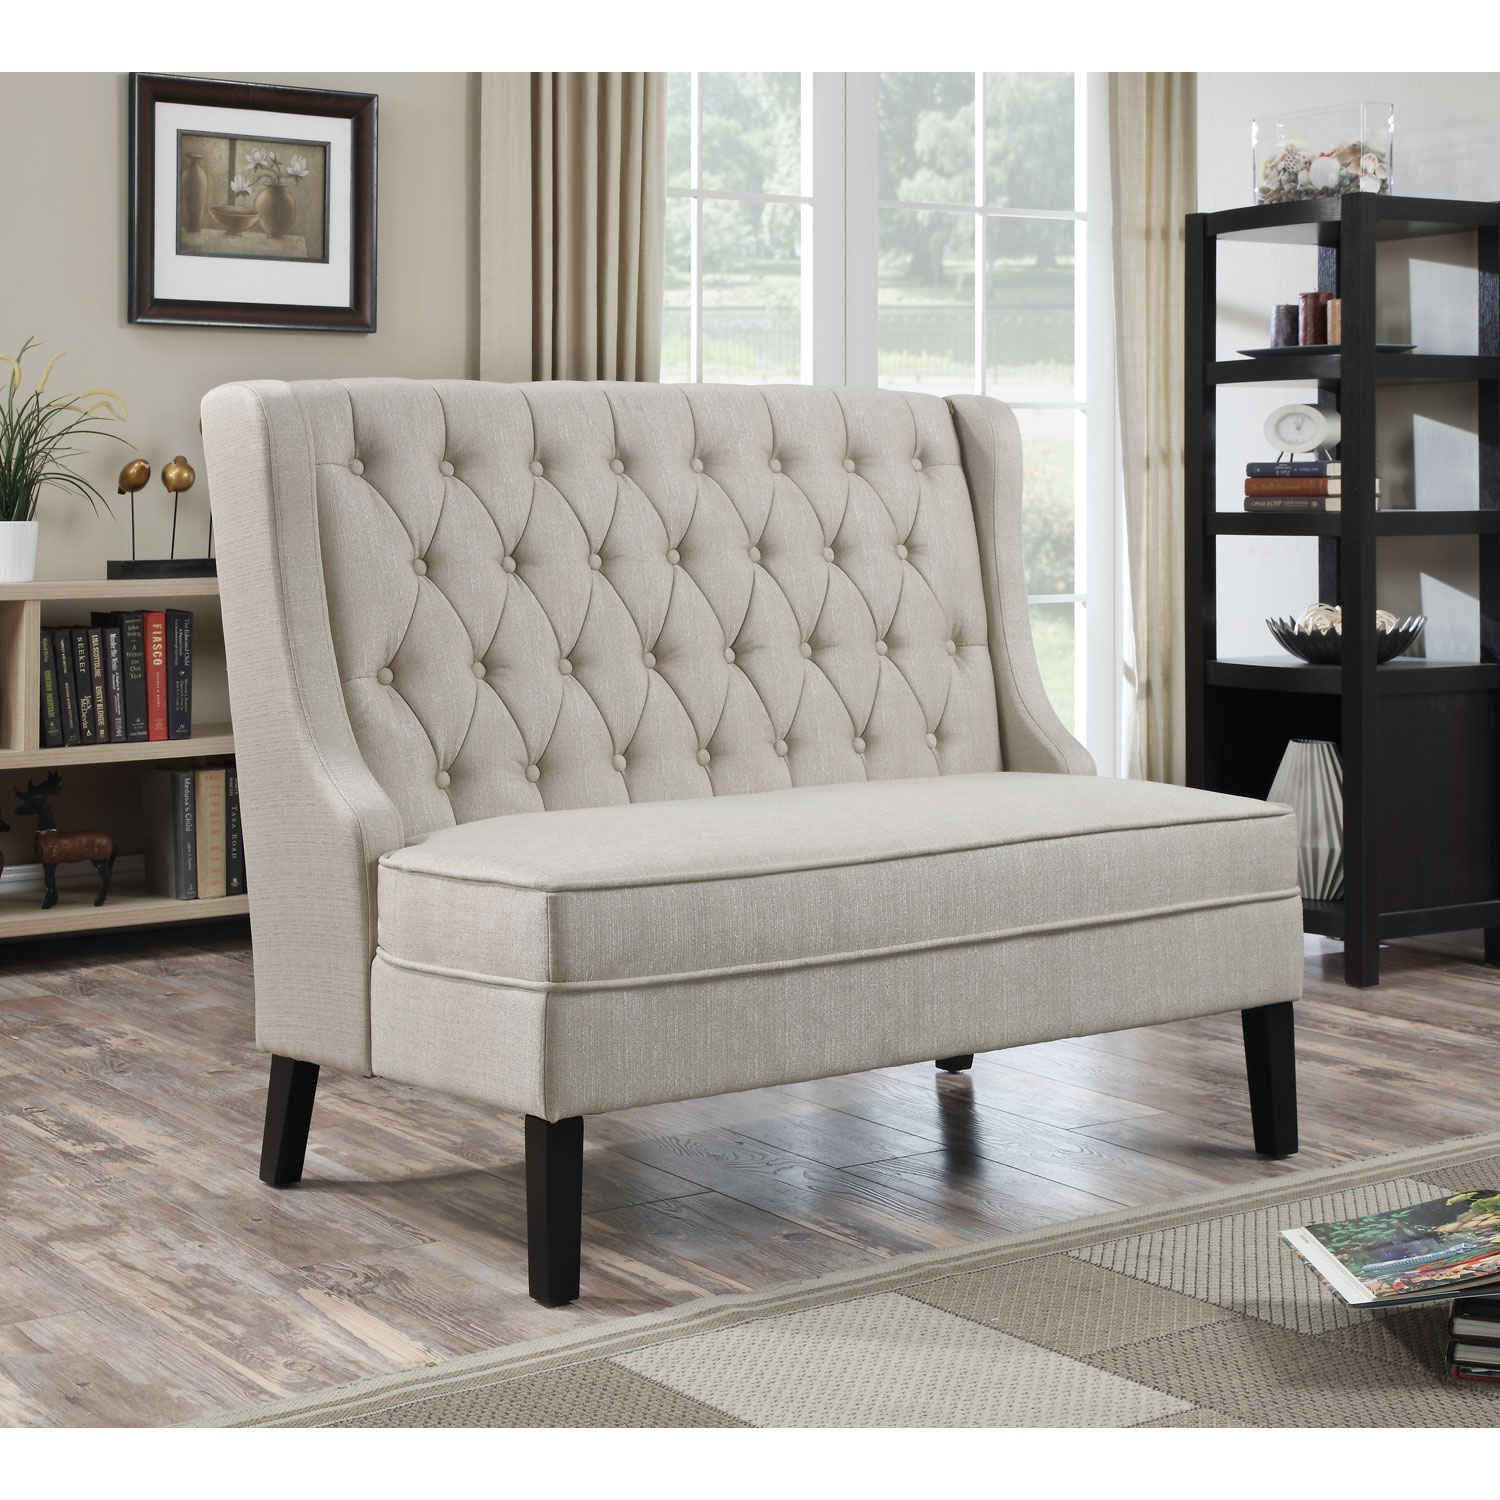 Banquette Tuxedo Oatmeal Bench Pulaski Furniture Benches Accent Storage Benches Accent F Upholstered Banquette Banquette Bench Furniture